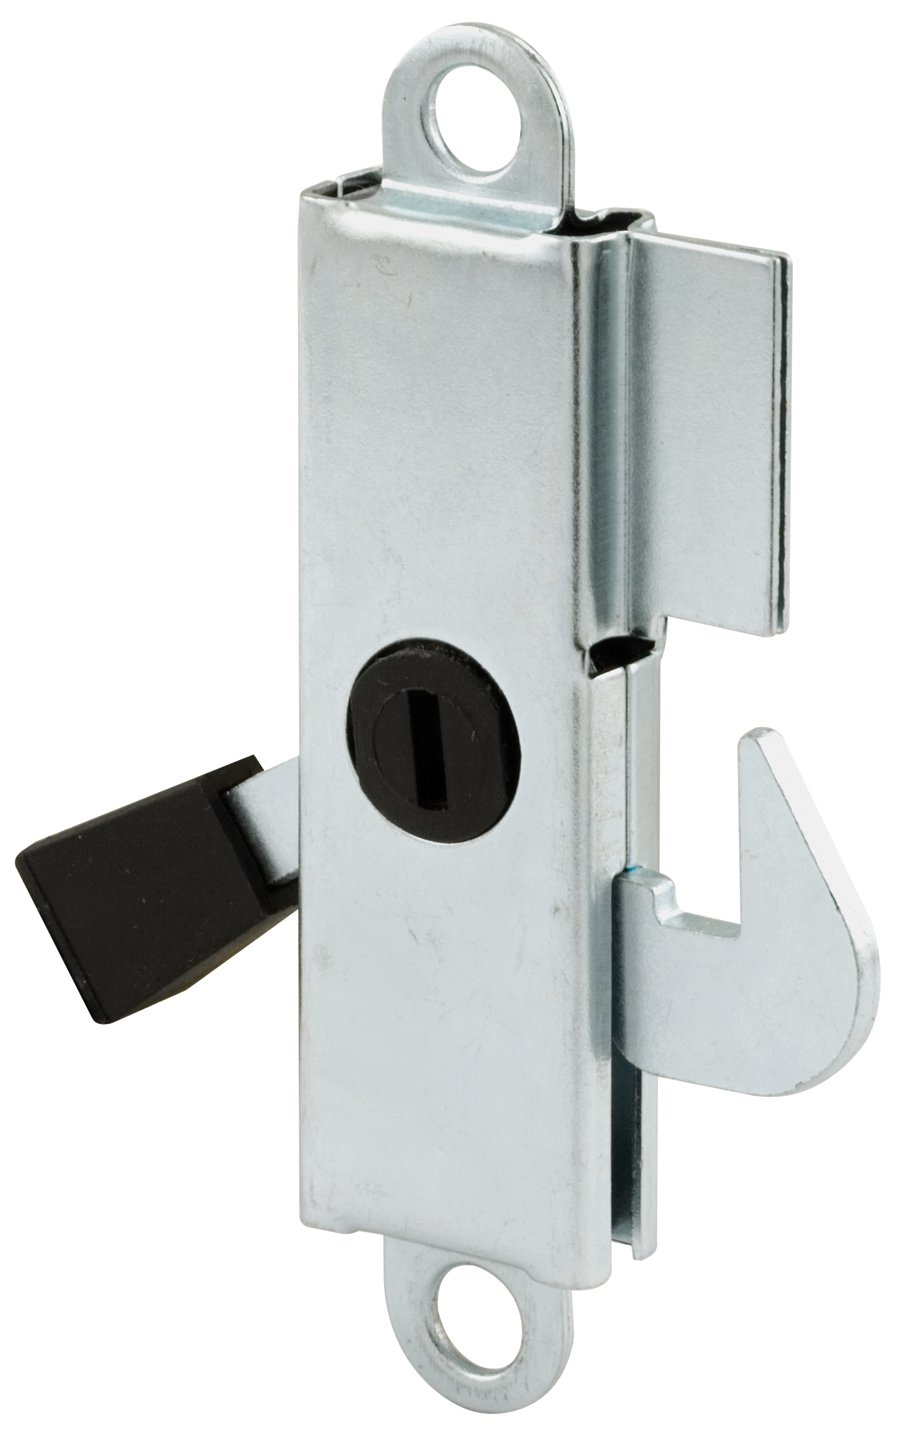 Prime-Line Products E 2105 Sliding Door Internal Lock, Aluminum with Steel Hook and Lever